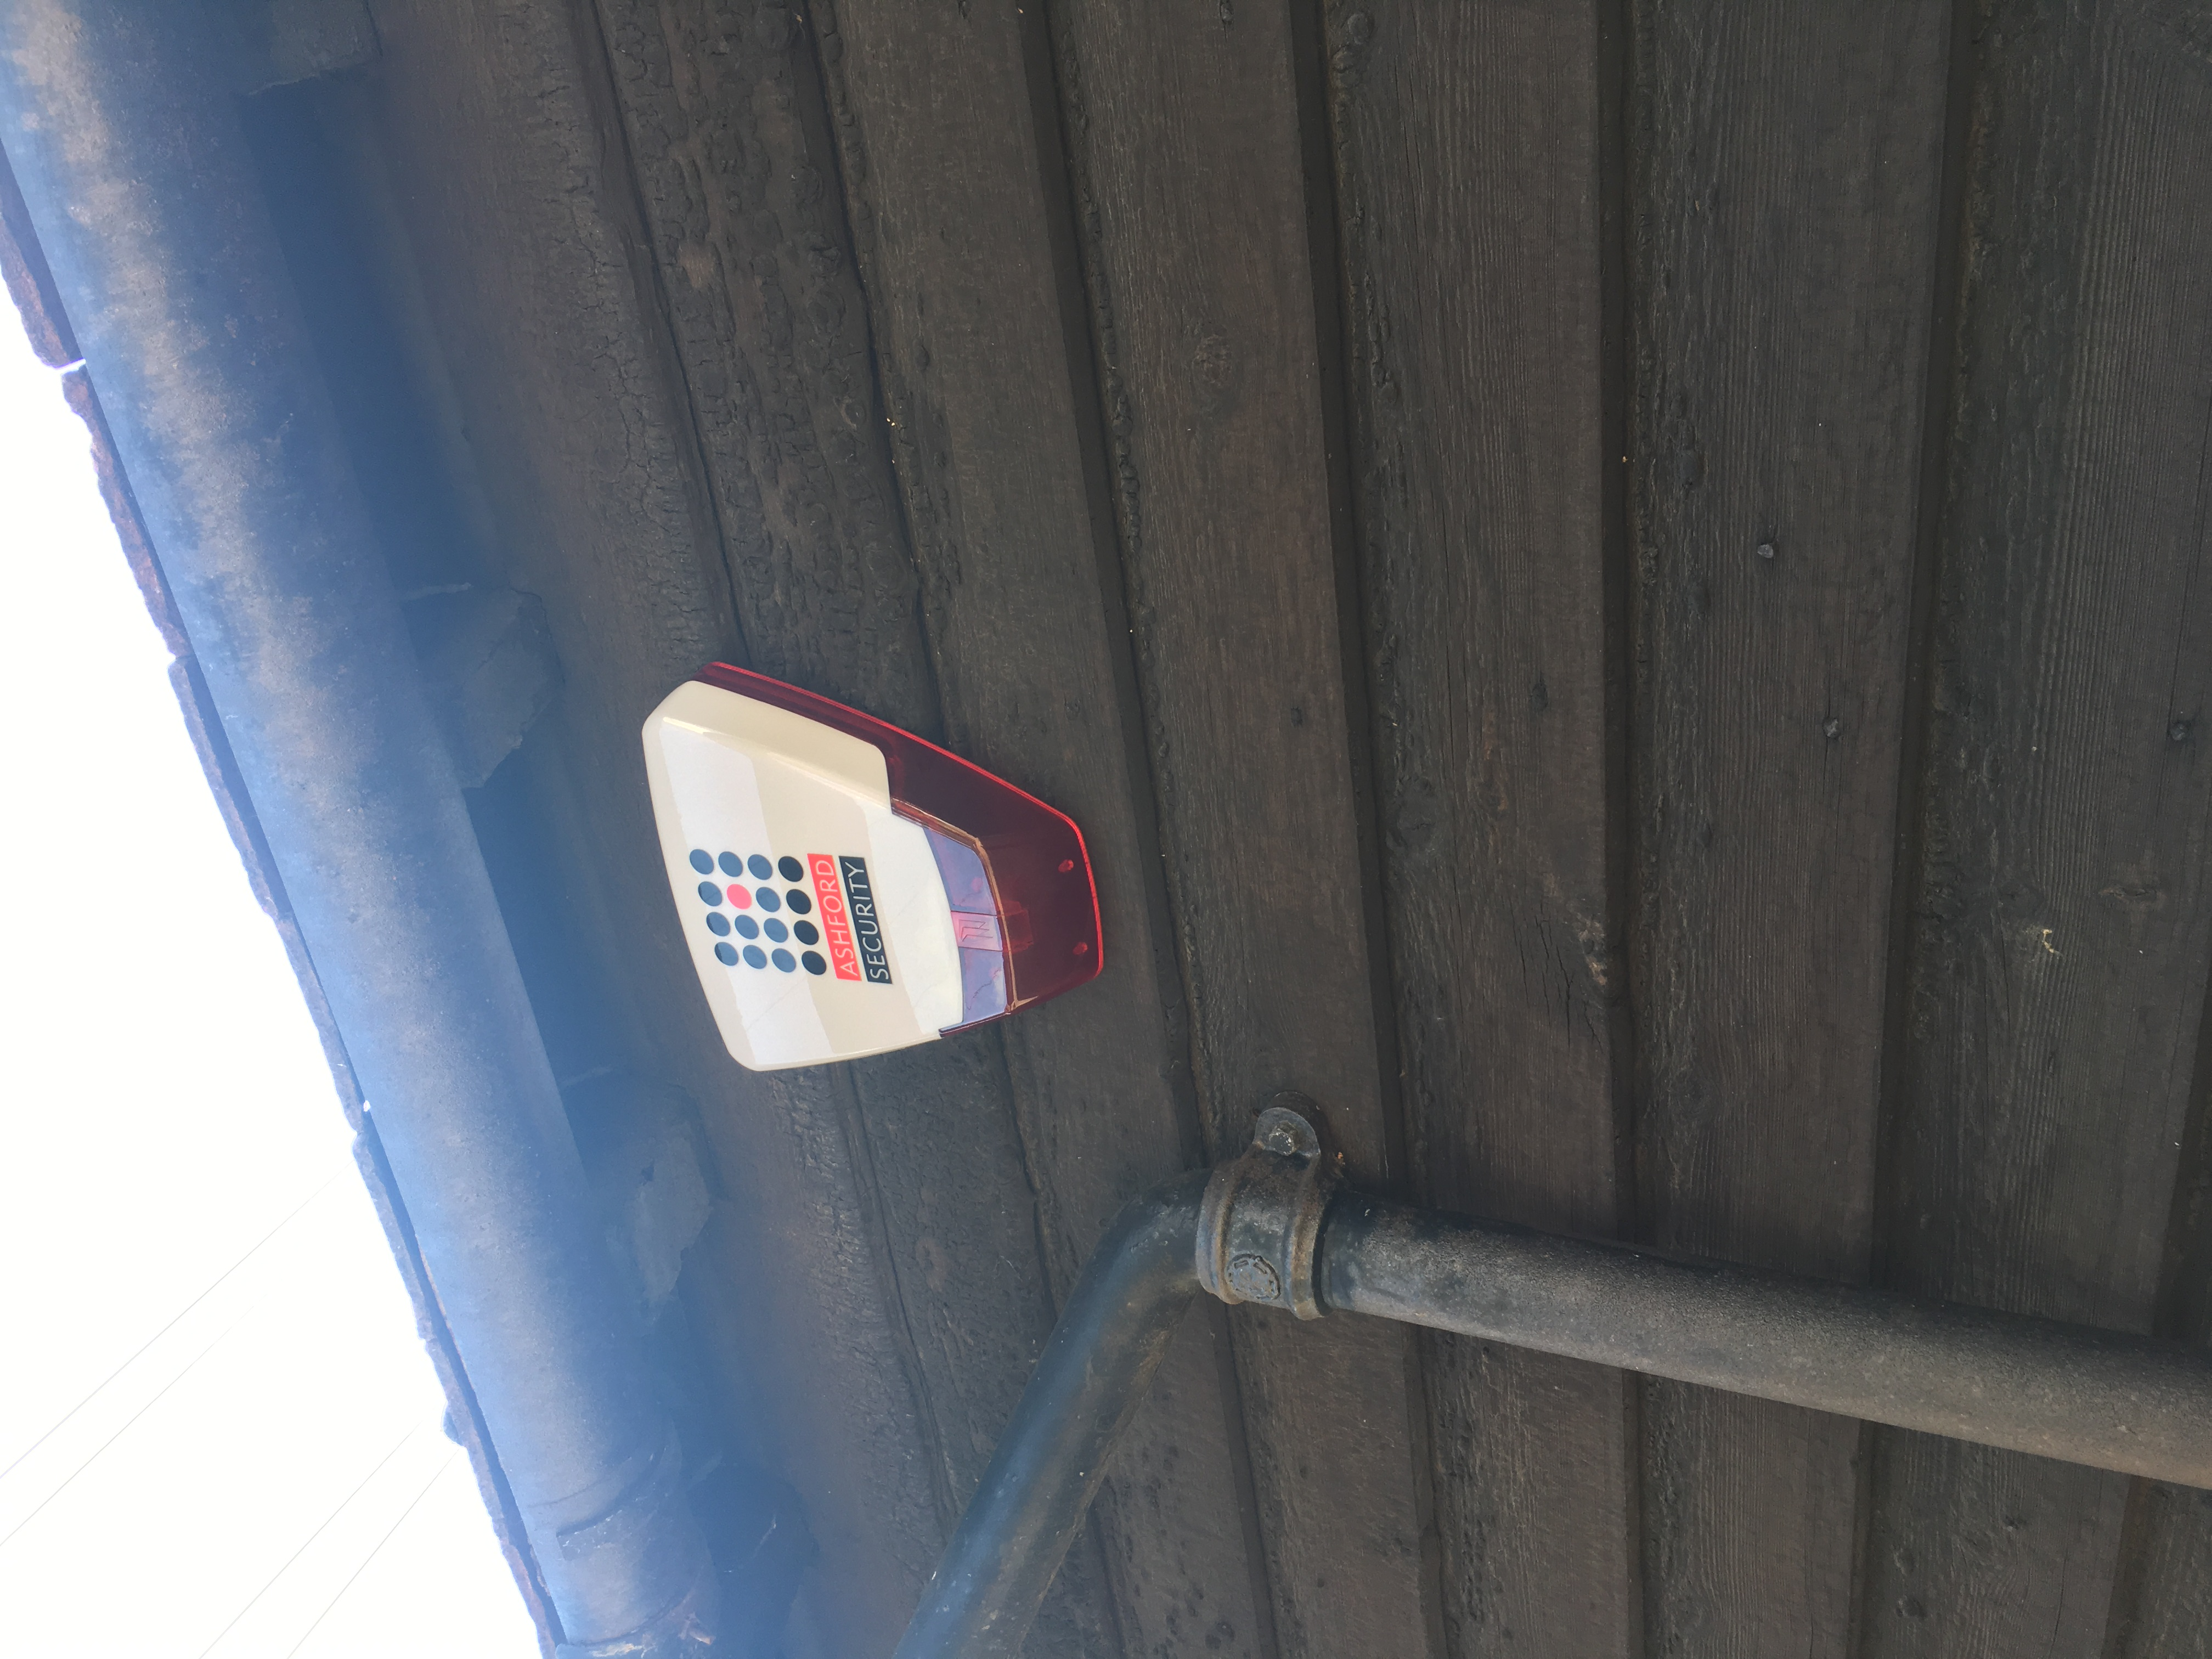 Intruder Alarm System - Wired - Wireless - Pyronix - Ashford Security Ltd